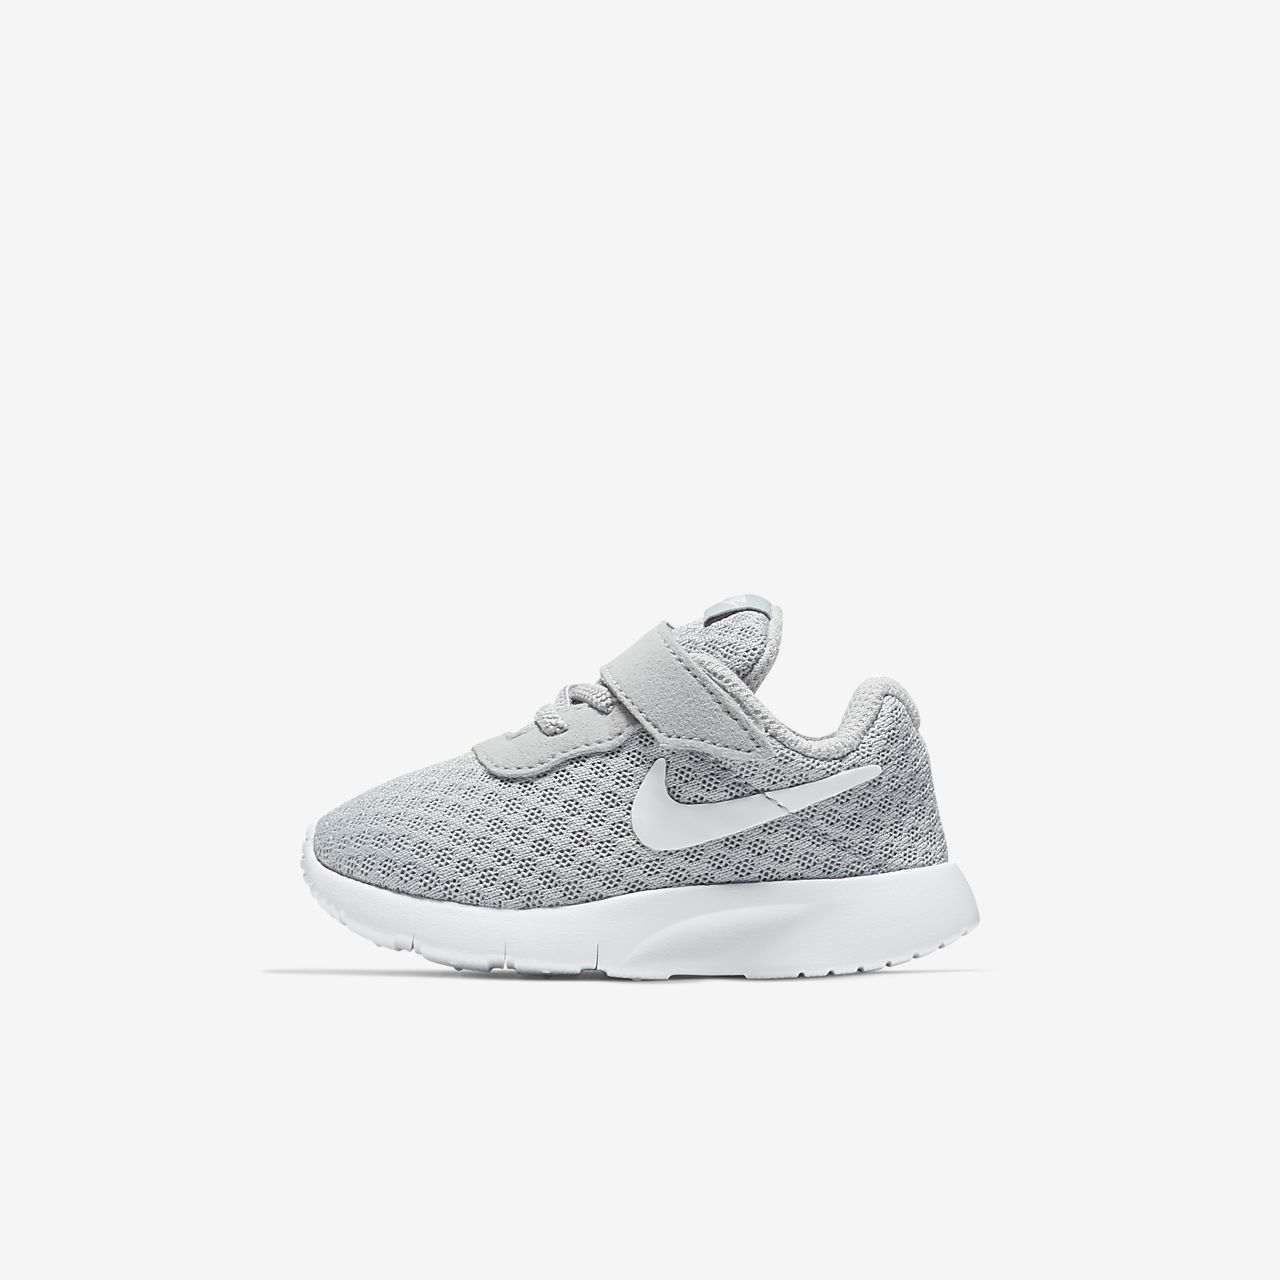 Nike Tanjun (2c-10c) Infant/Toddler Shoe